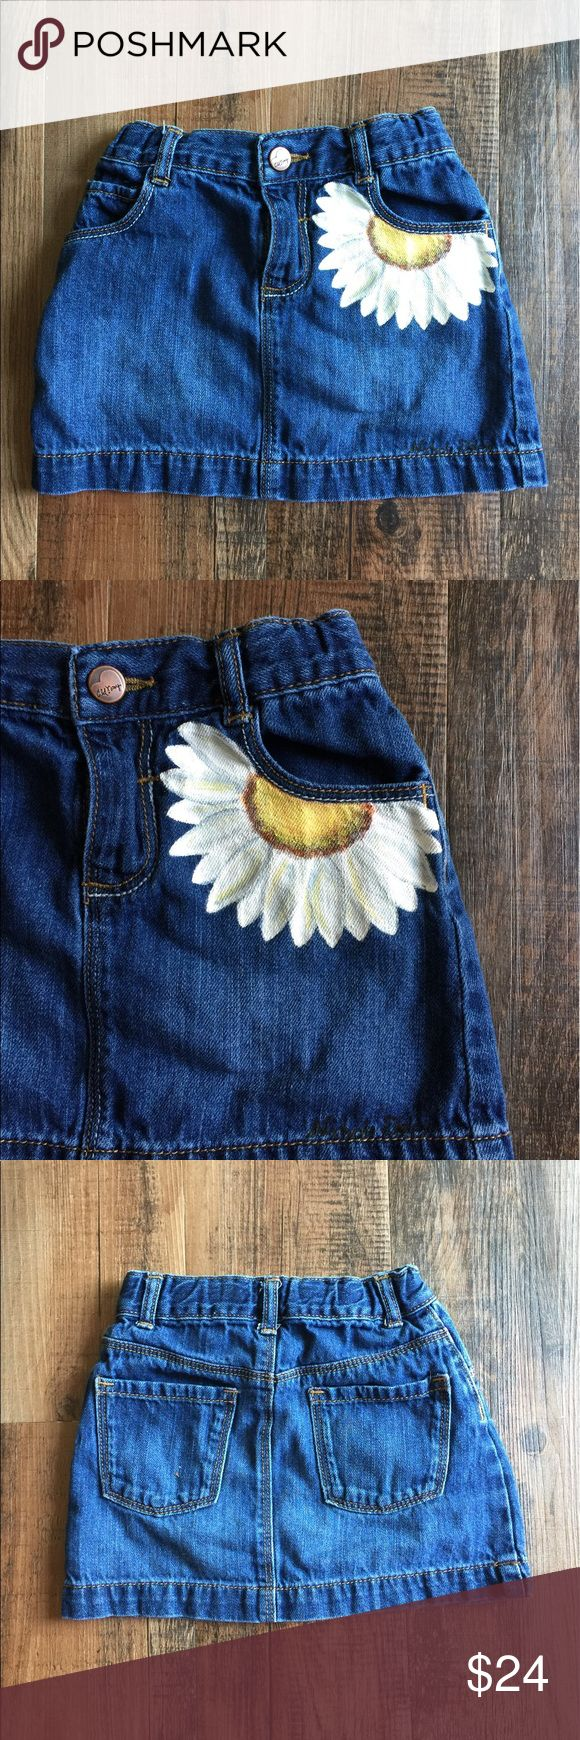 Old Navy Denim Skirt with Hand Painted Daisy 4T Old Navy denim skirt with hand painted White Daisy.         Size 4T 100% cotton upcycled. Machine wash and dry inside out. Unique, one of a kind, hand painted item. Old Navy Bottoms Skirts